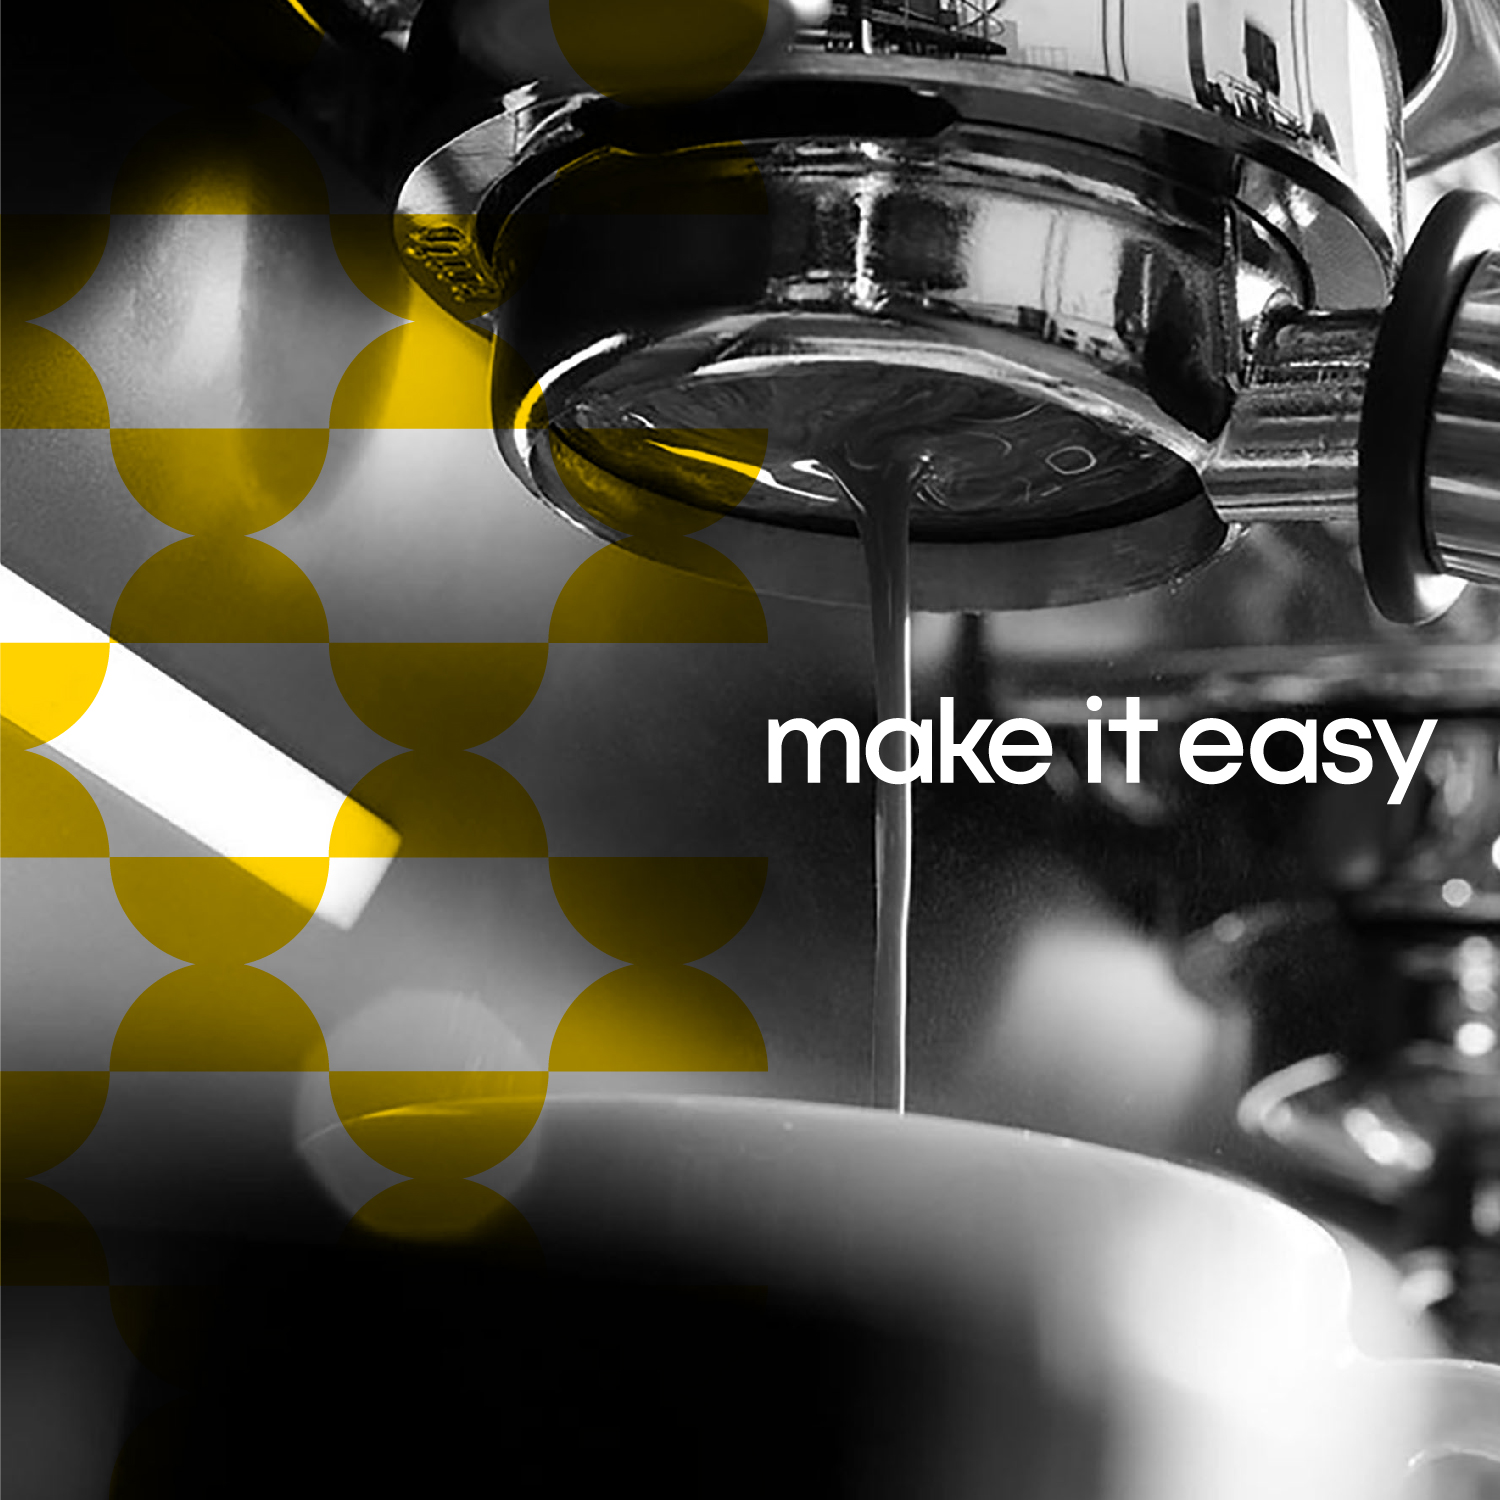 Cotecco coffee machine pour with 'make it easy' brand promise